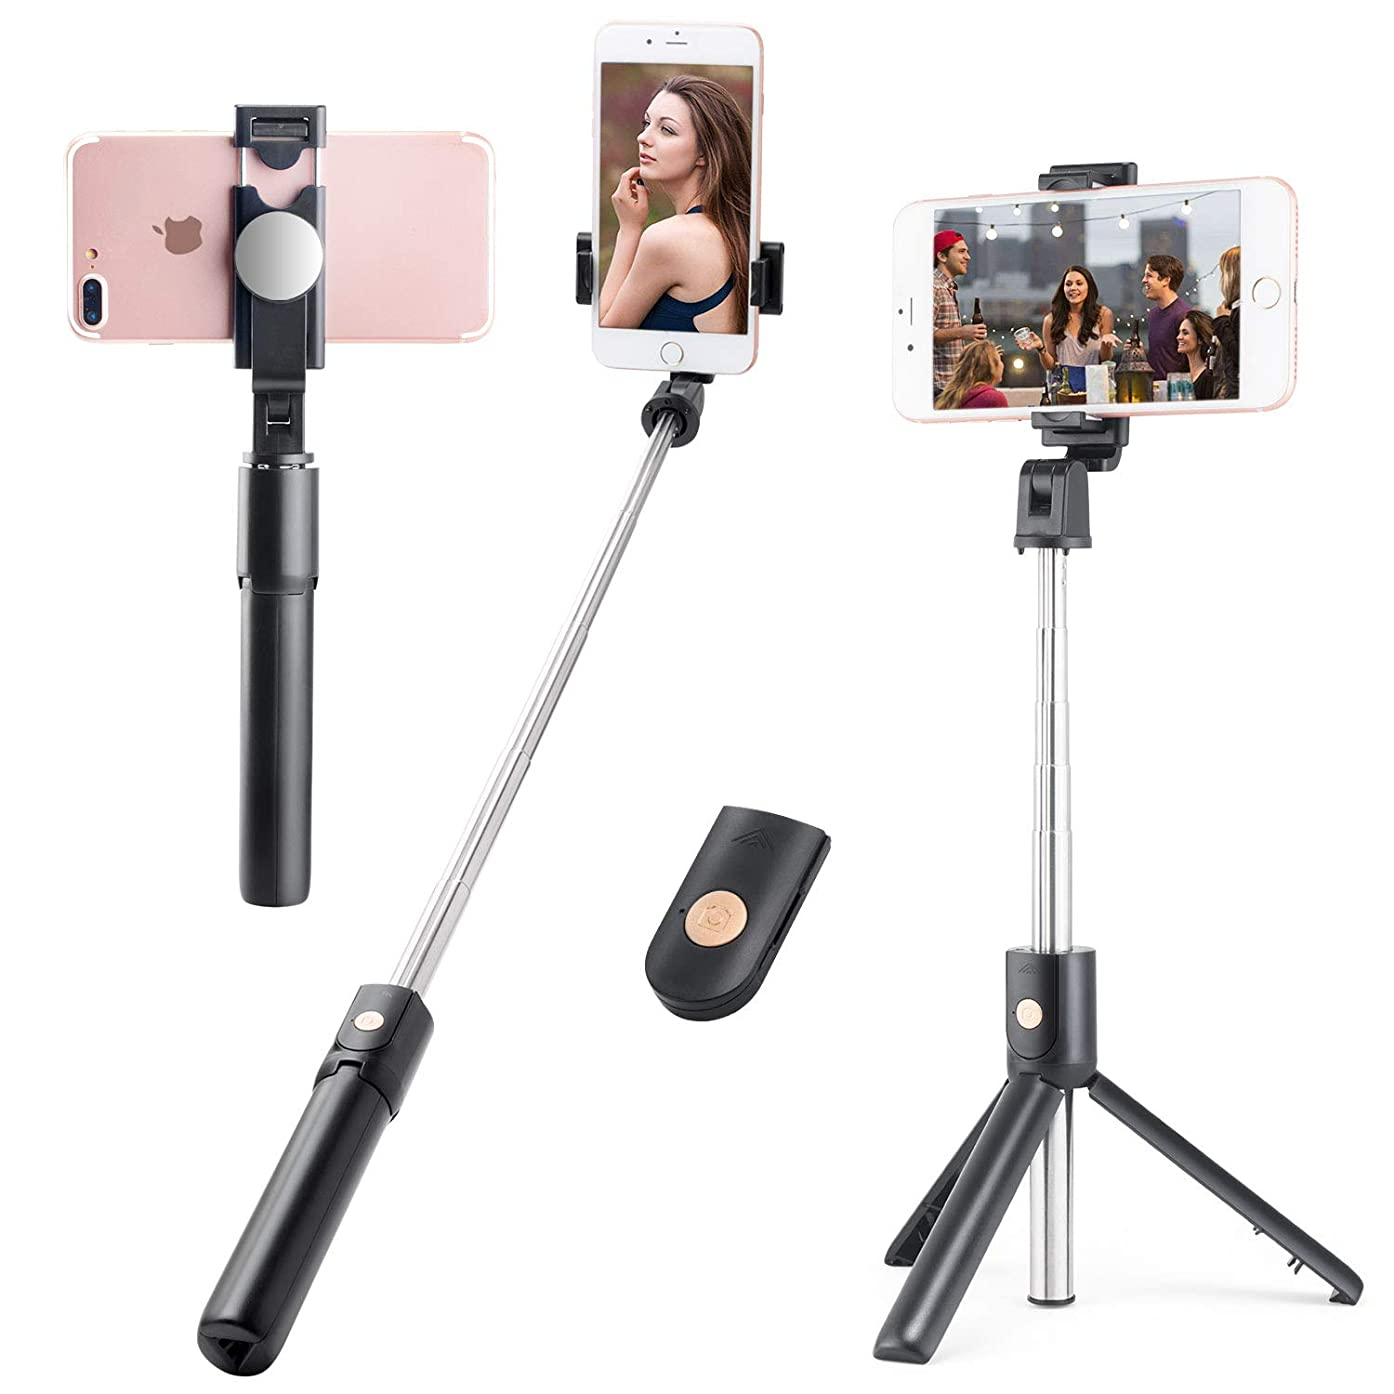 WIYFA Selfie Stick Tripod Stand Holder Extendable with Bluetooth Remote 360°Rotatable Phone Holder with Back View Mirror-Black 02